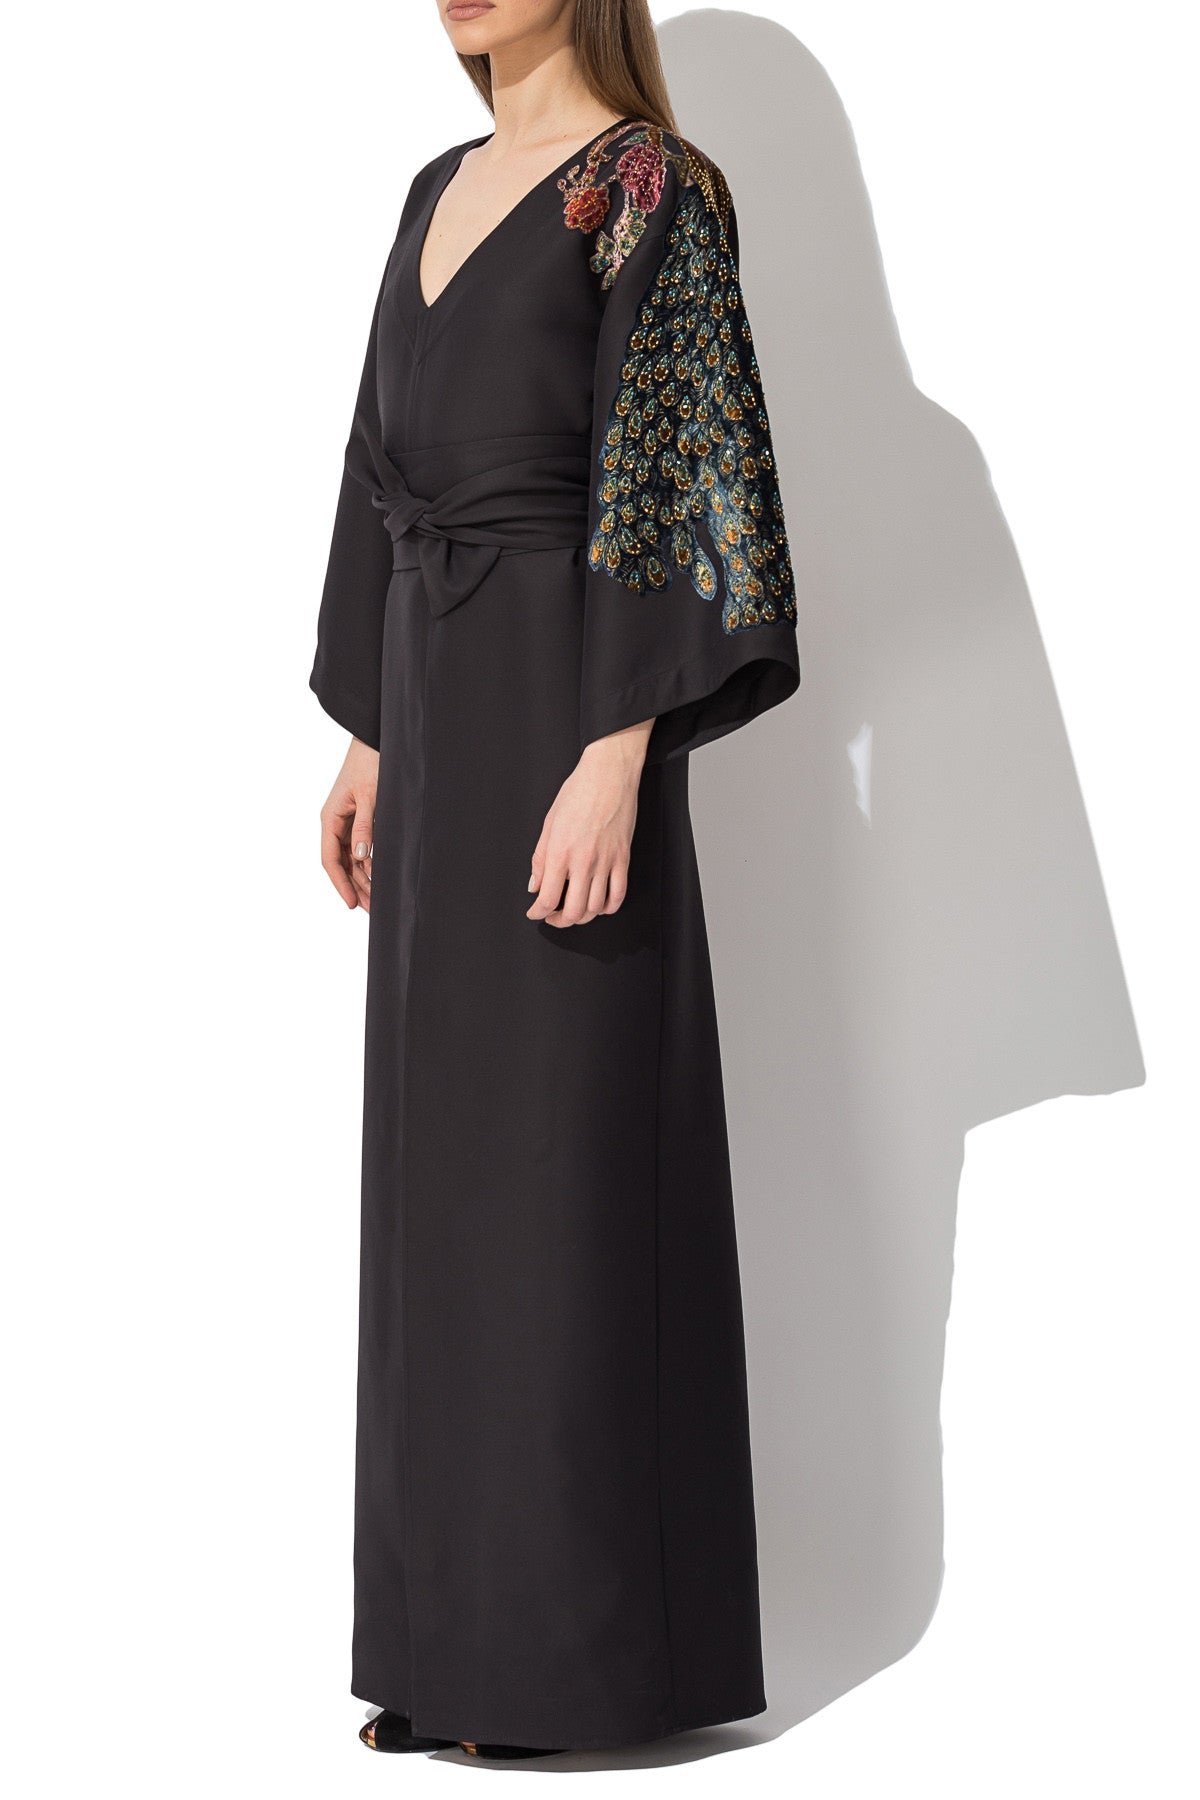 Appliquéd Kimono Gown, Dress - A.A Design